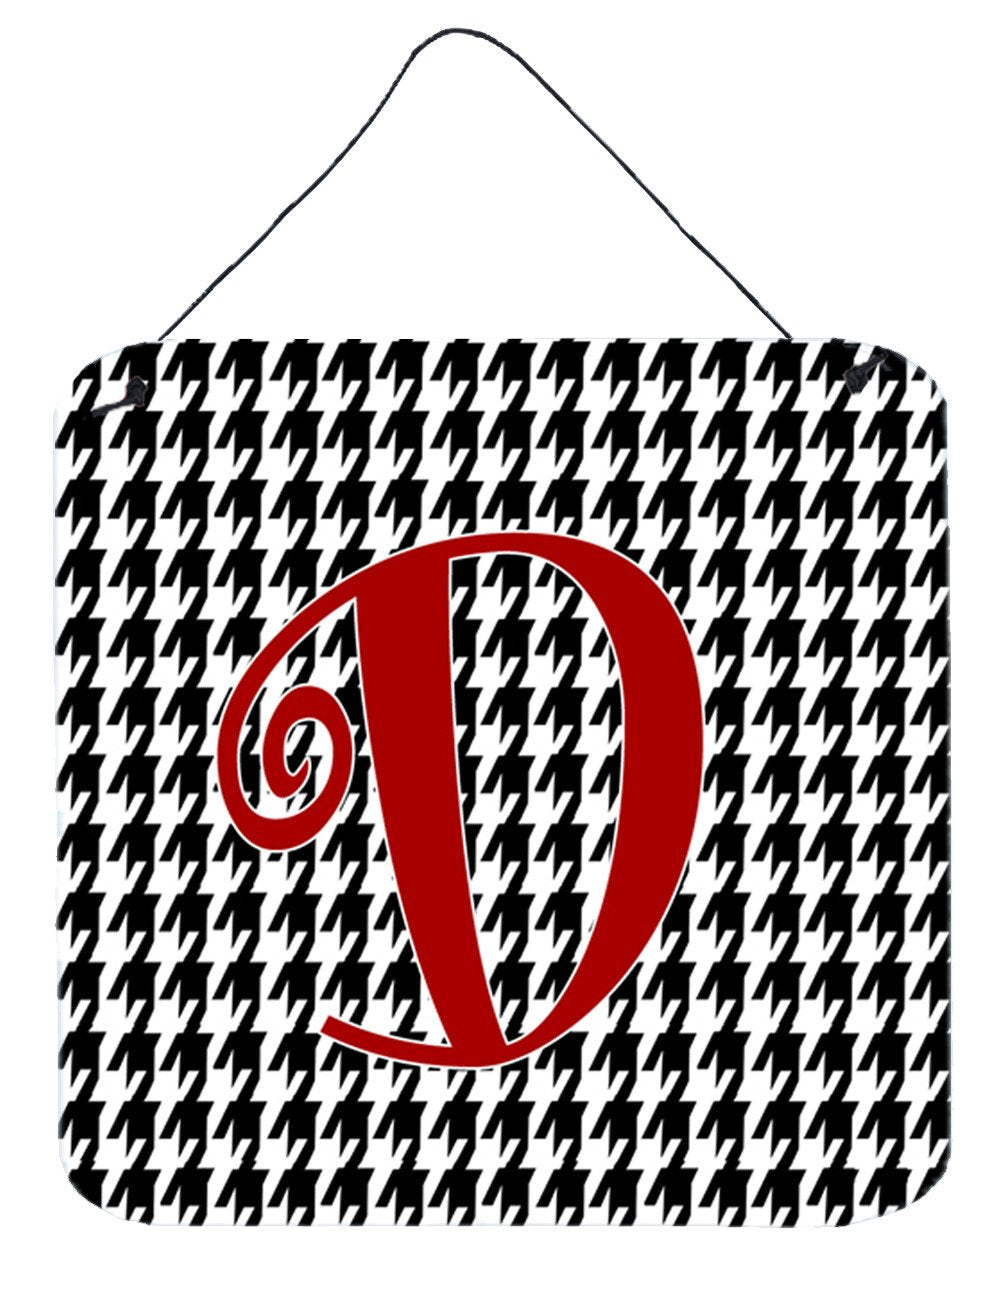 Letter D Initial Monogram - Houndstooth Black Wall or Door Hanging Prints by Caroline's Treasures